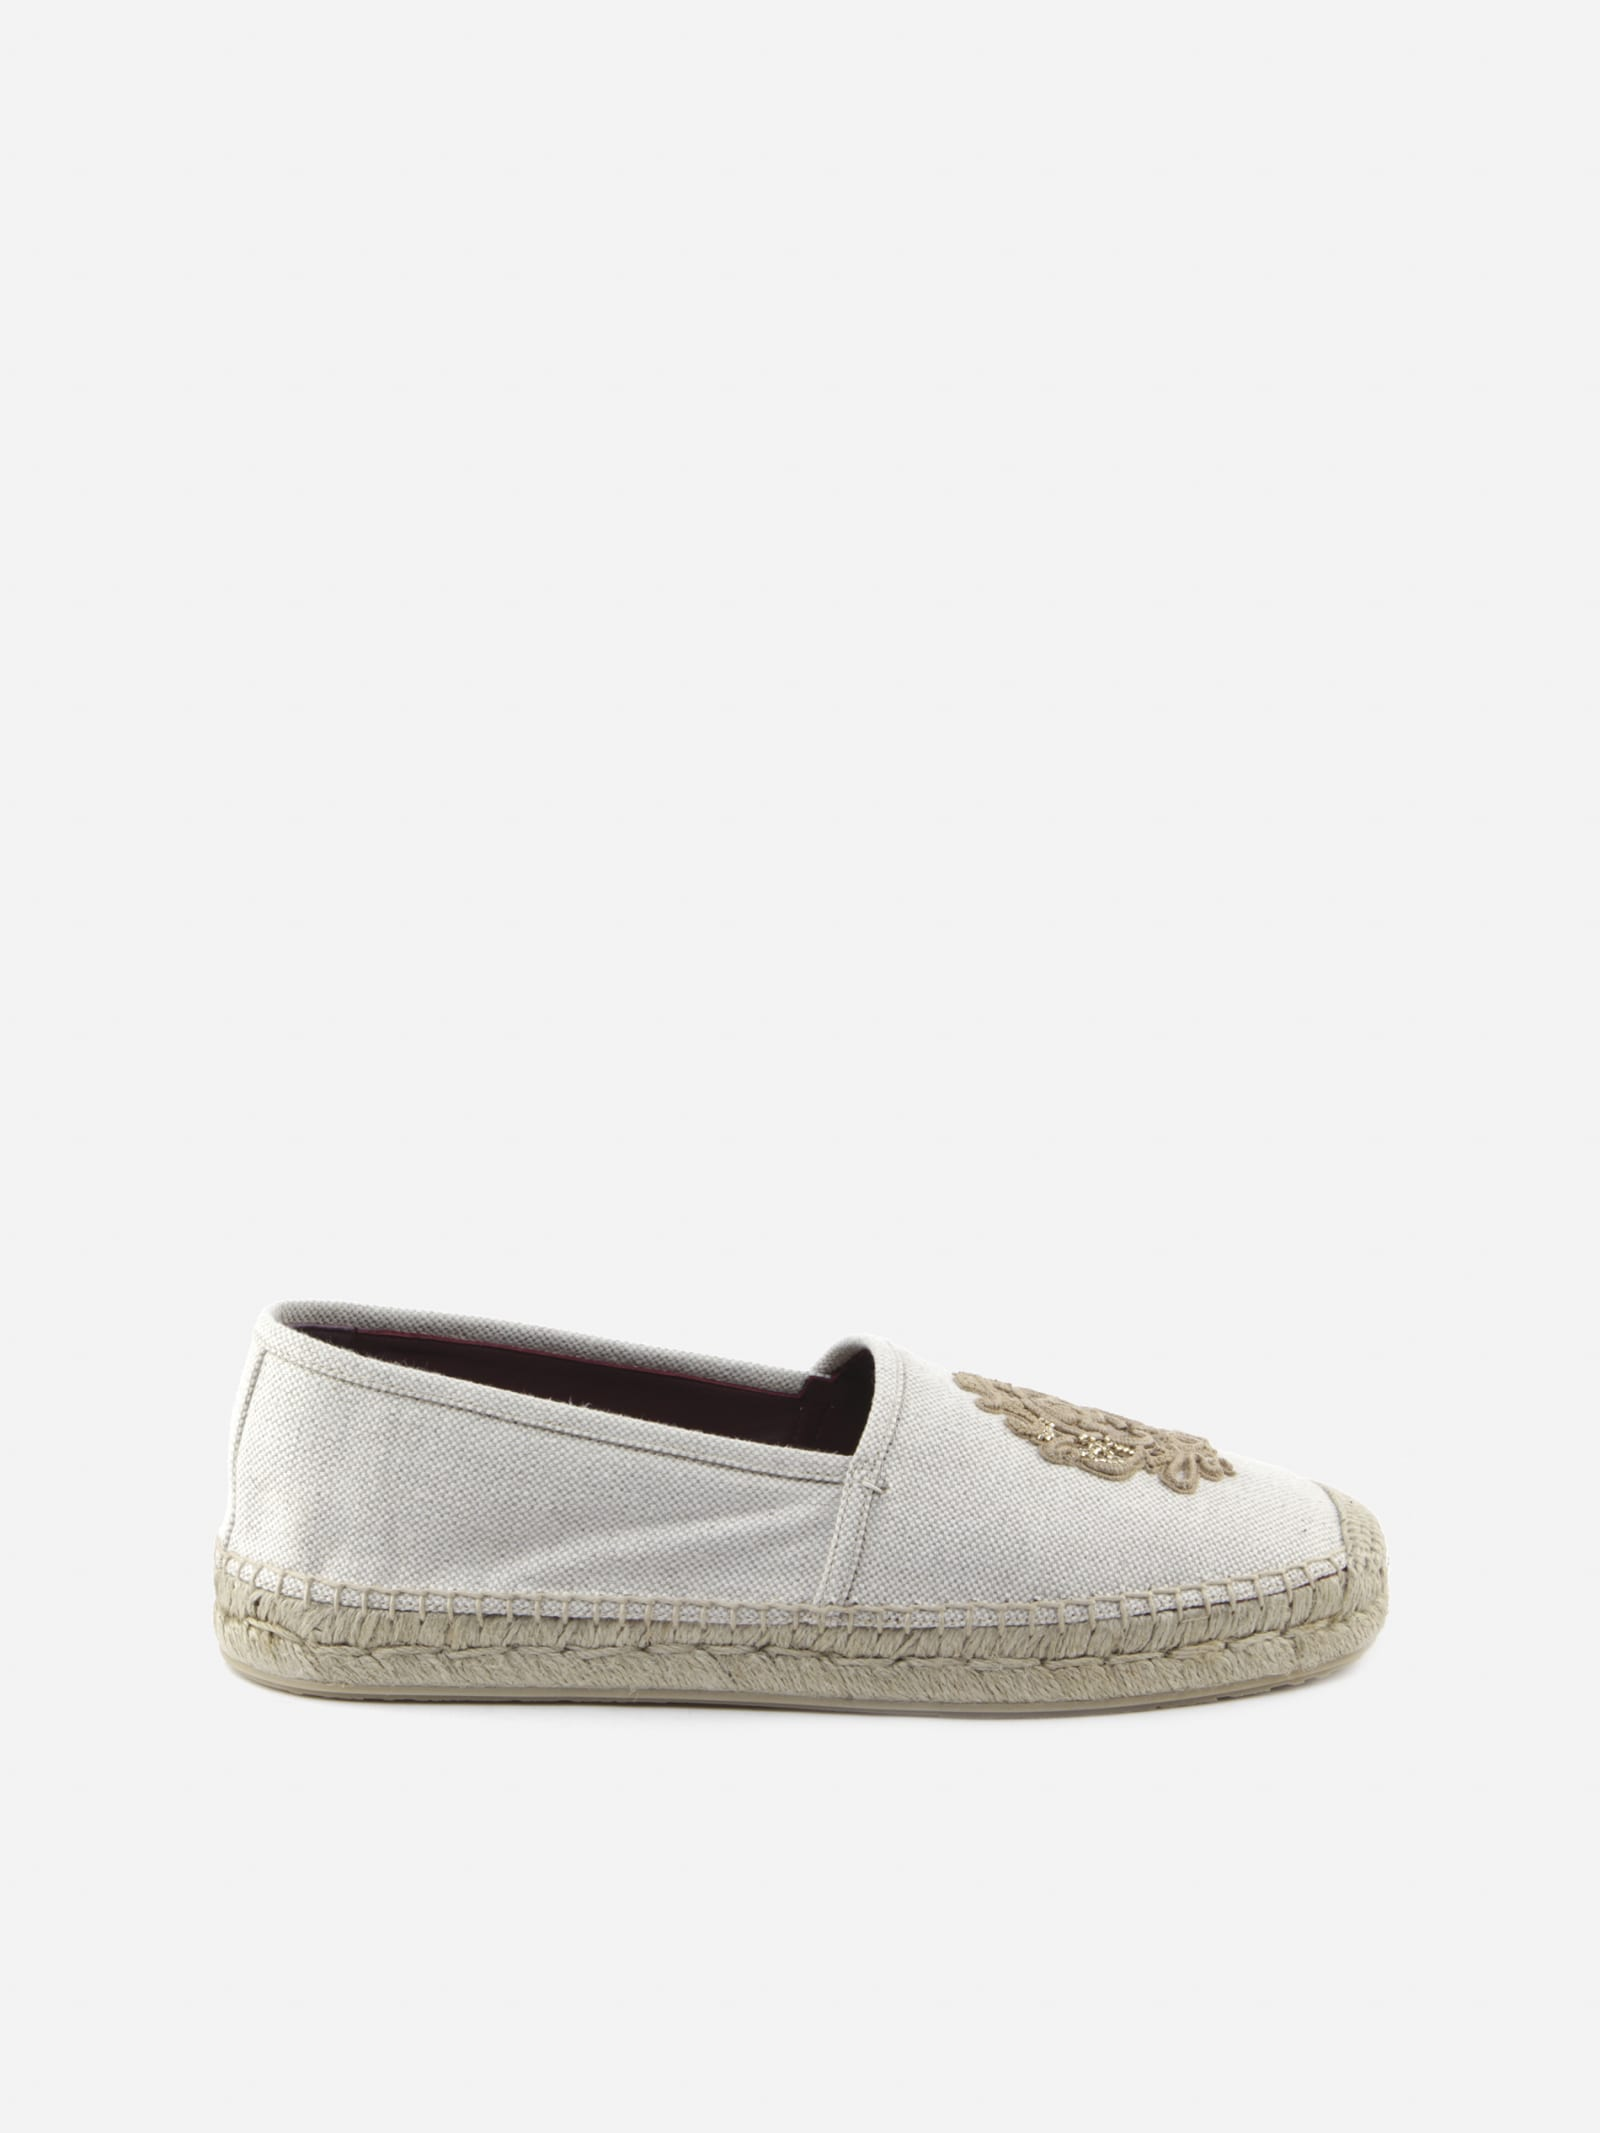 Dolce & Gabbana Canvases CANVAS ESPADRILLES WITH EMBROIDERED PATCH